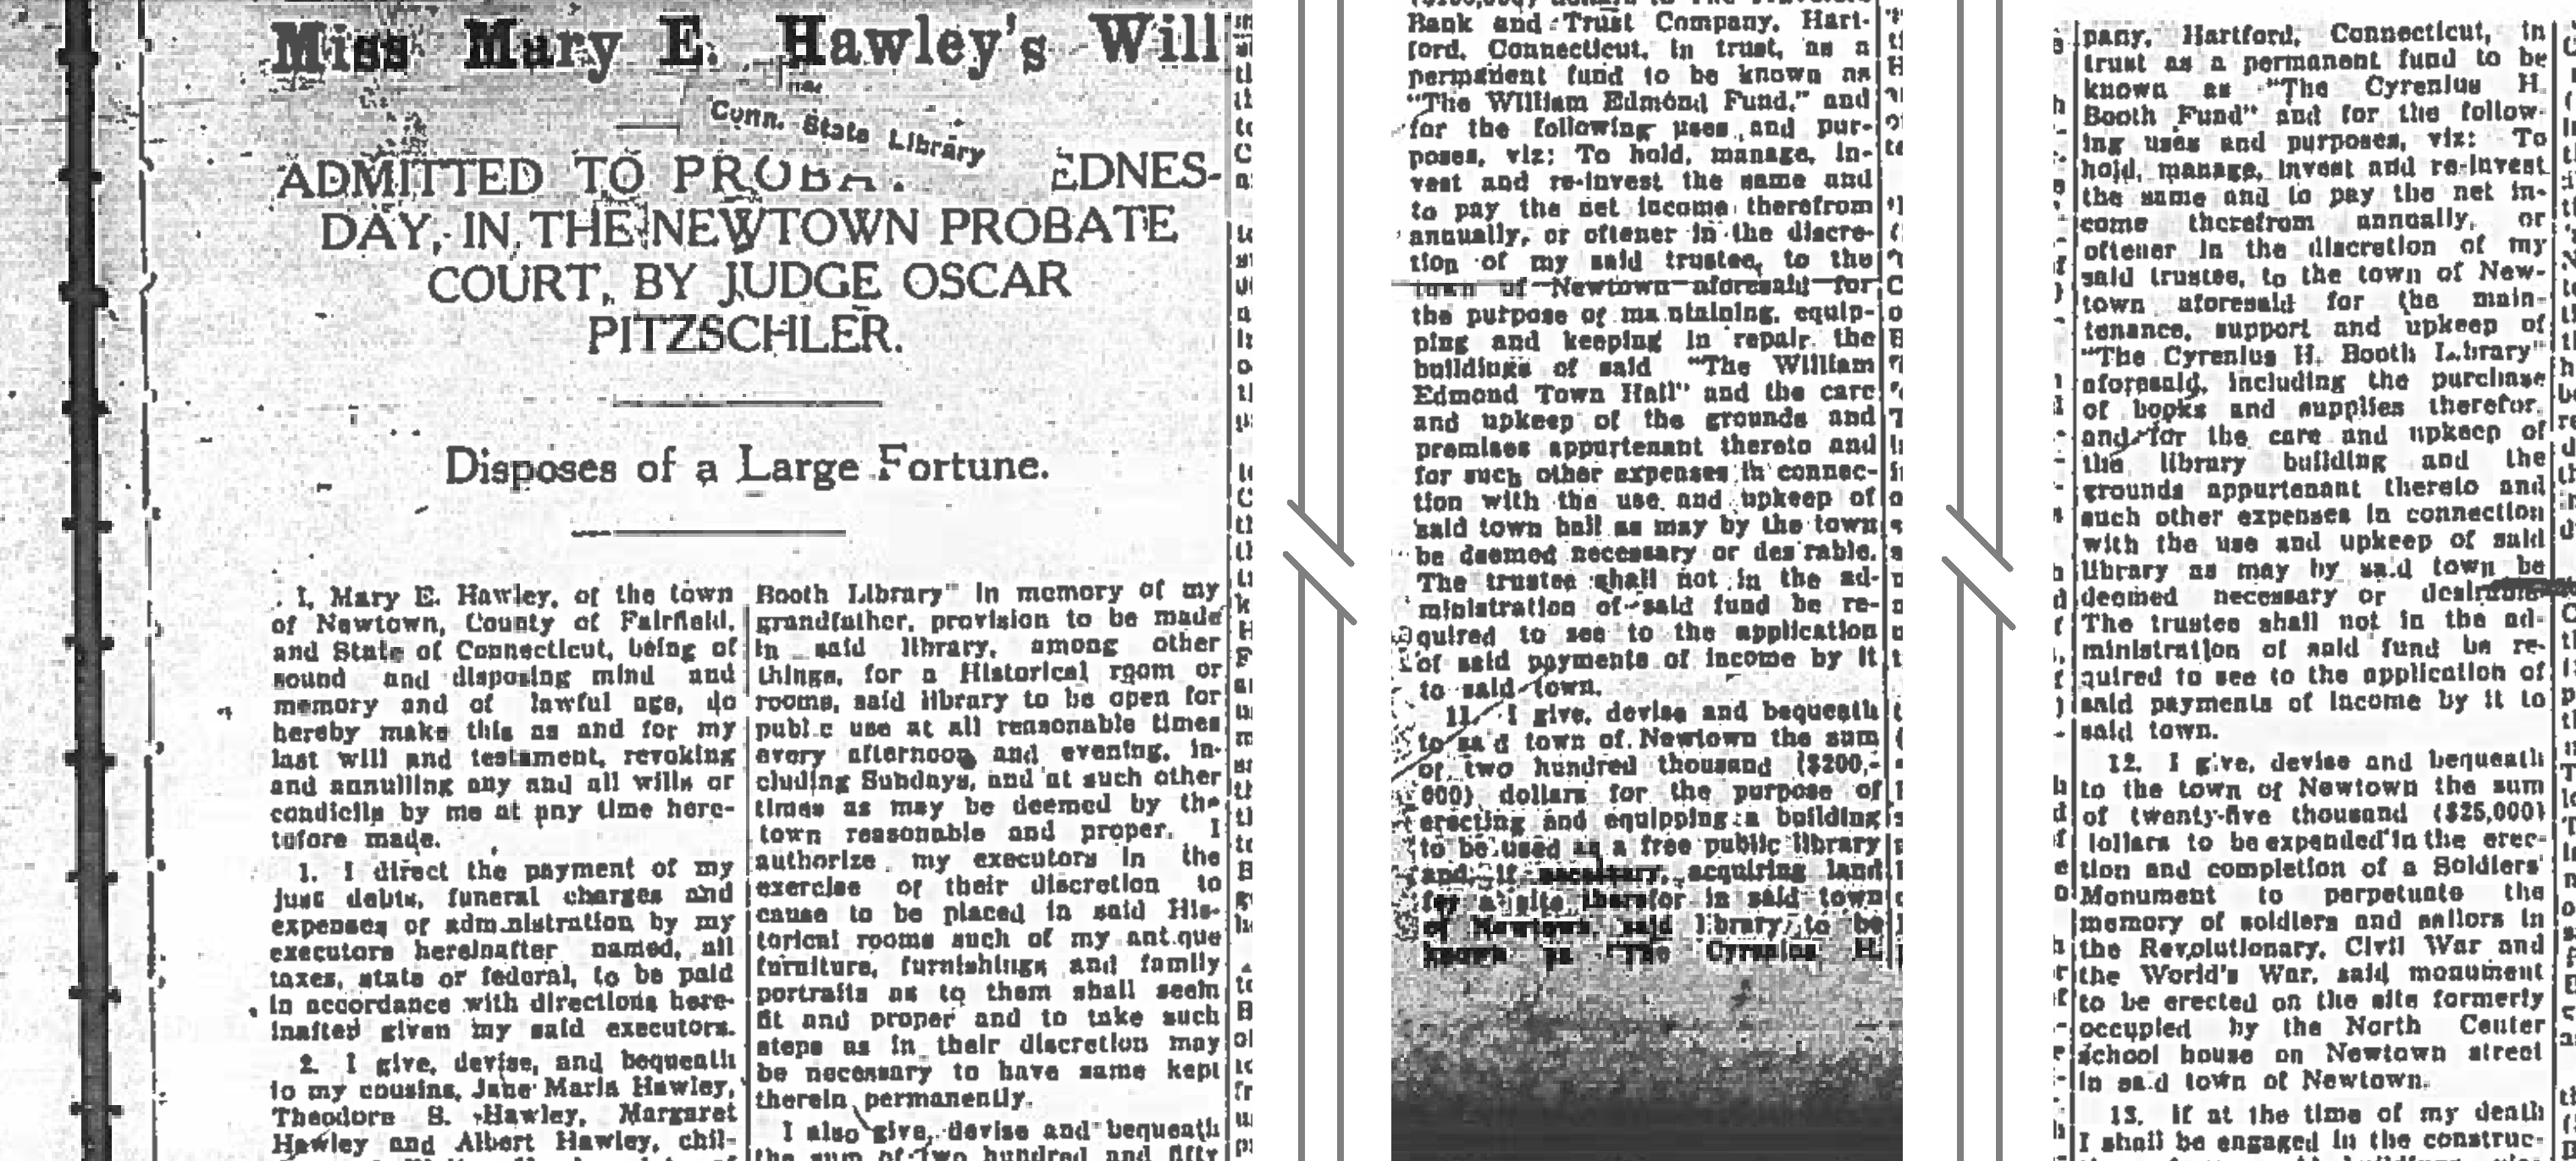 thumbnail showing scanned sections of Mary Hawley's will relevant to the library